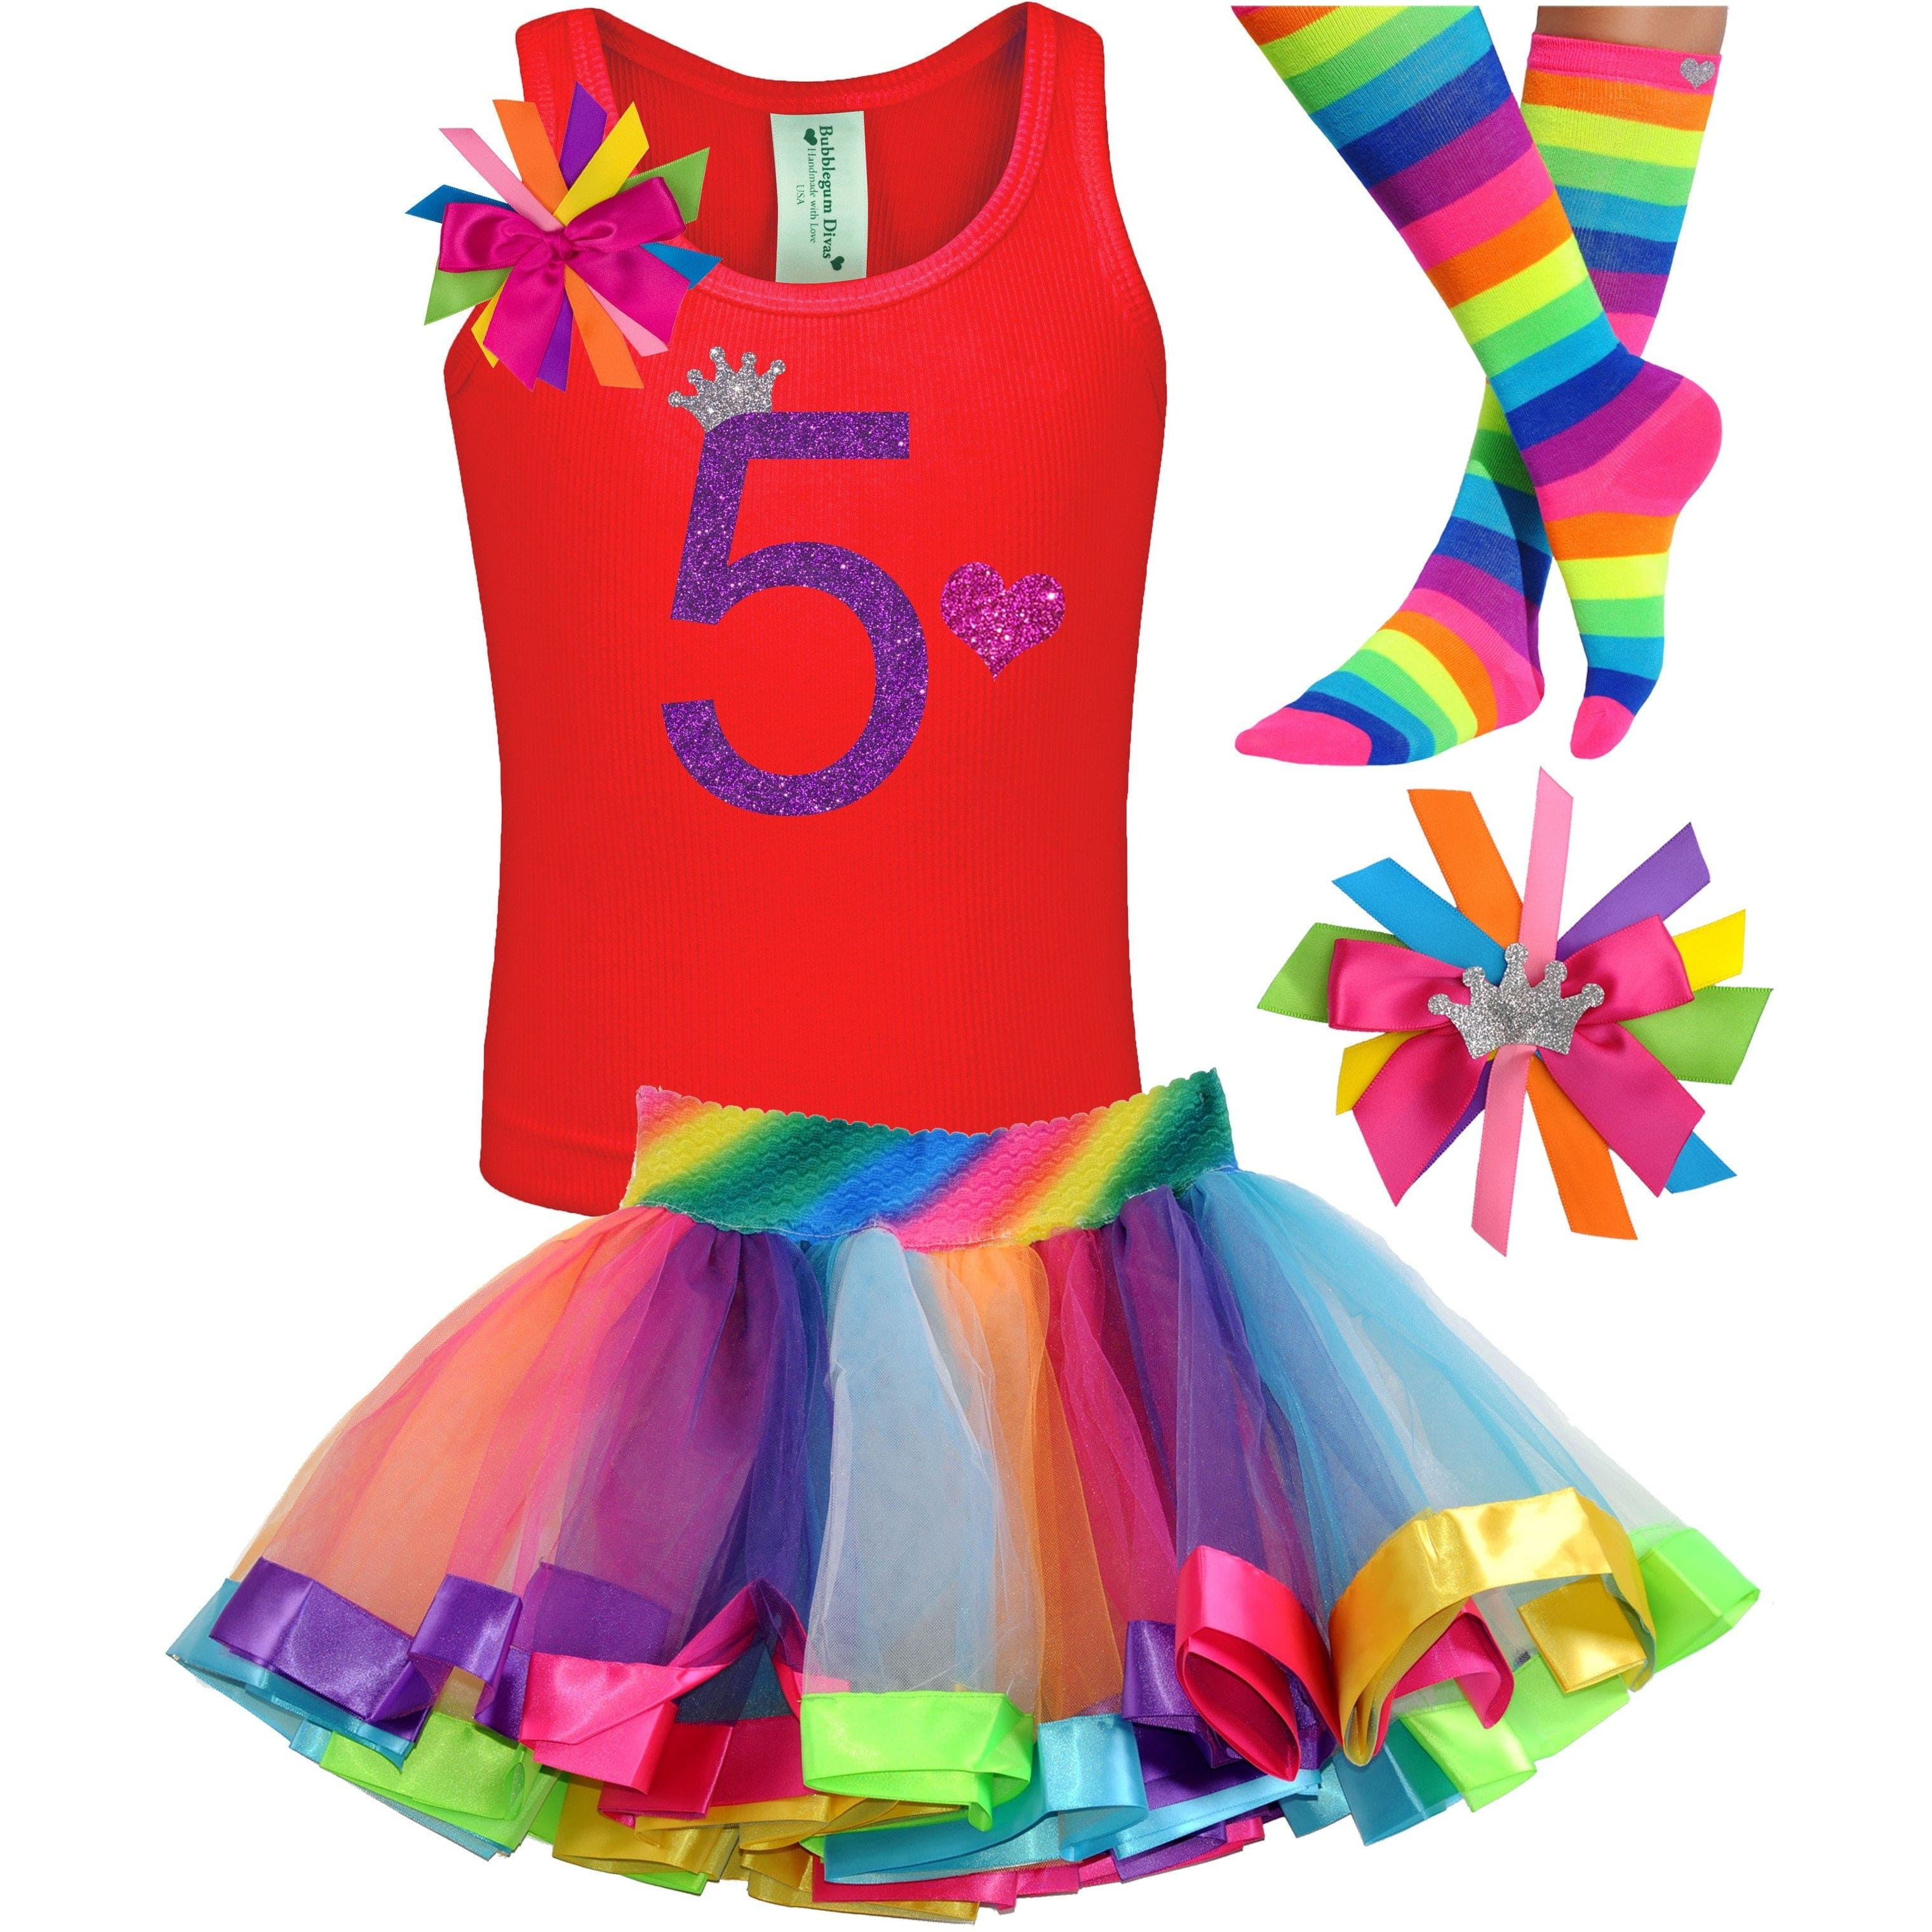 5th Birthday Shirt Rainbow Tutu Girls Party Outfit 4PC Set - Outfit - Bubblegum Divas Store